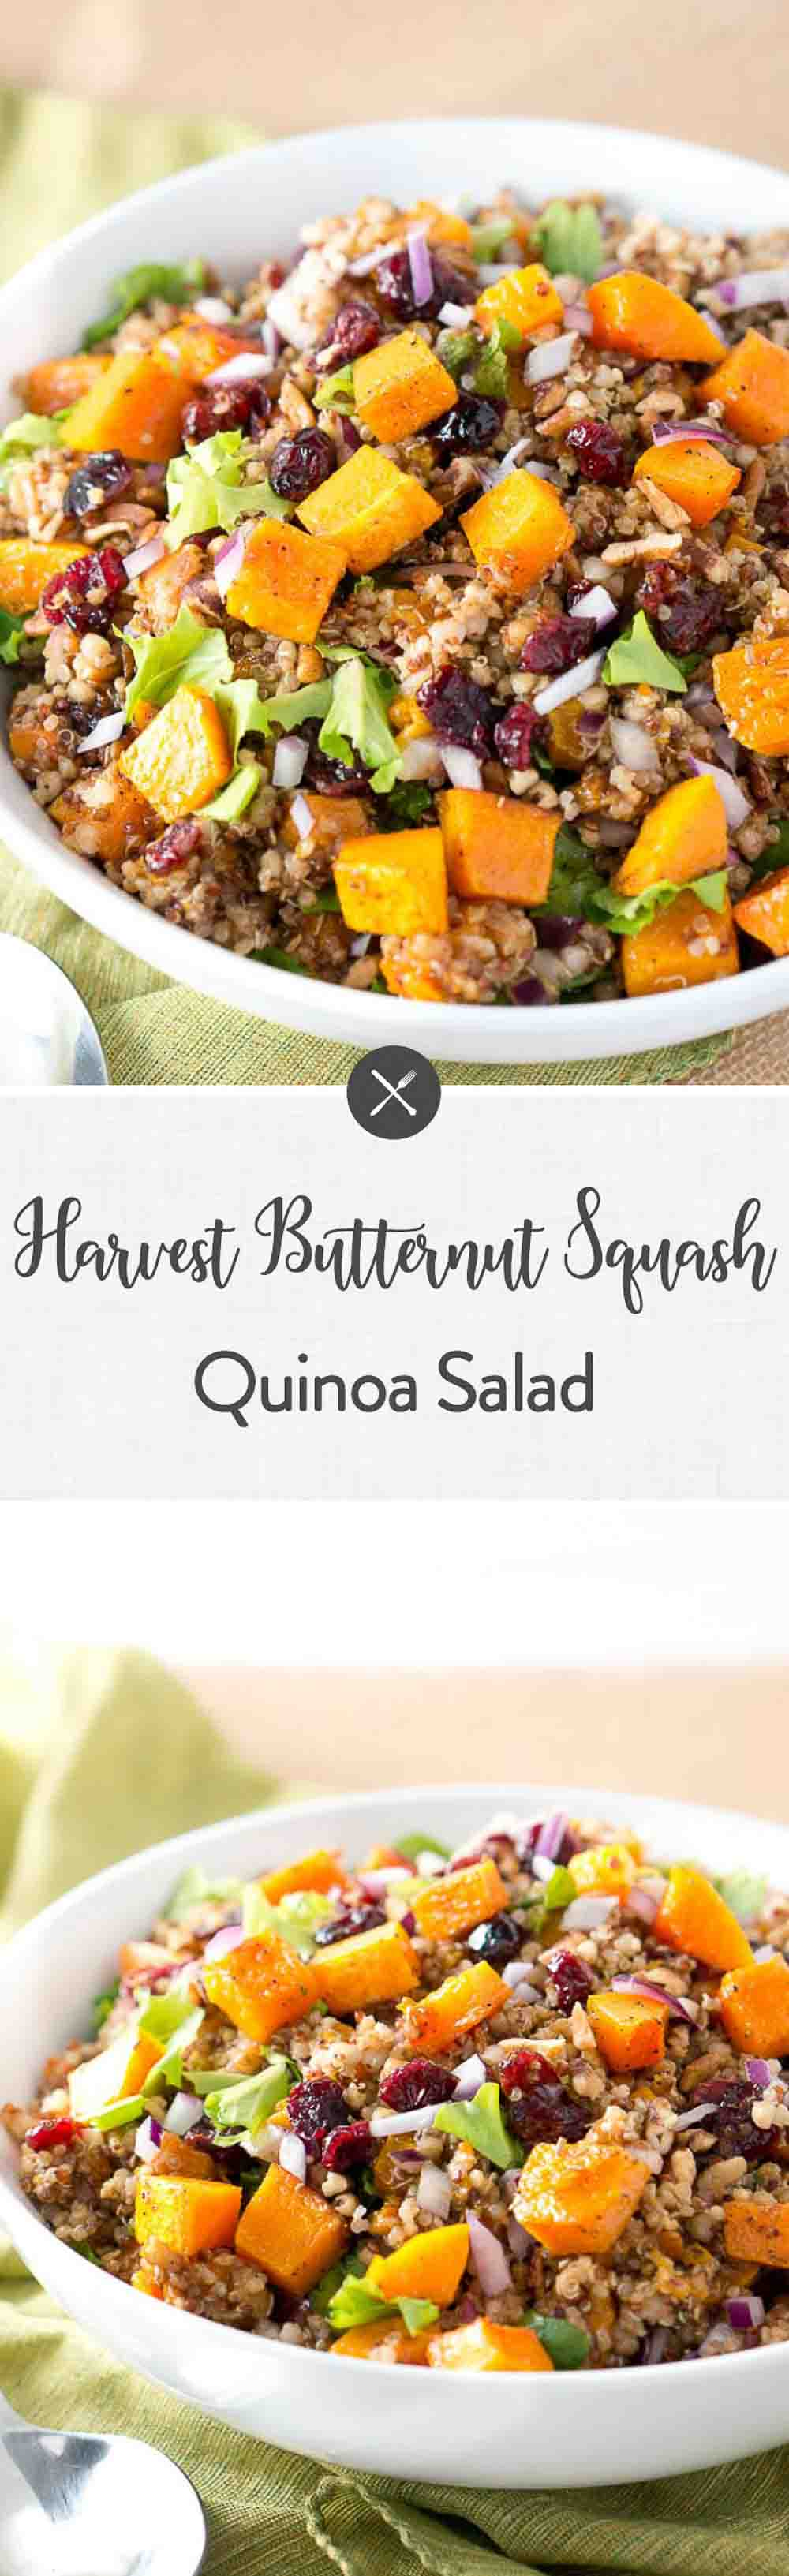 Delicious & healthy Butternut Squash Quinoa Salad that is surprisingly quick & easy to put together. Simple & Beautiful. Perfect side dish for the holidays. #thanksgiving #sides #healthy #glutenfree #holiday #paleo